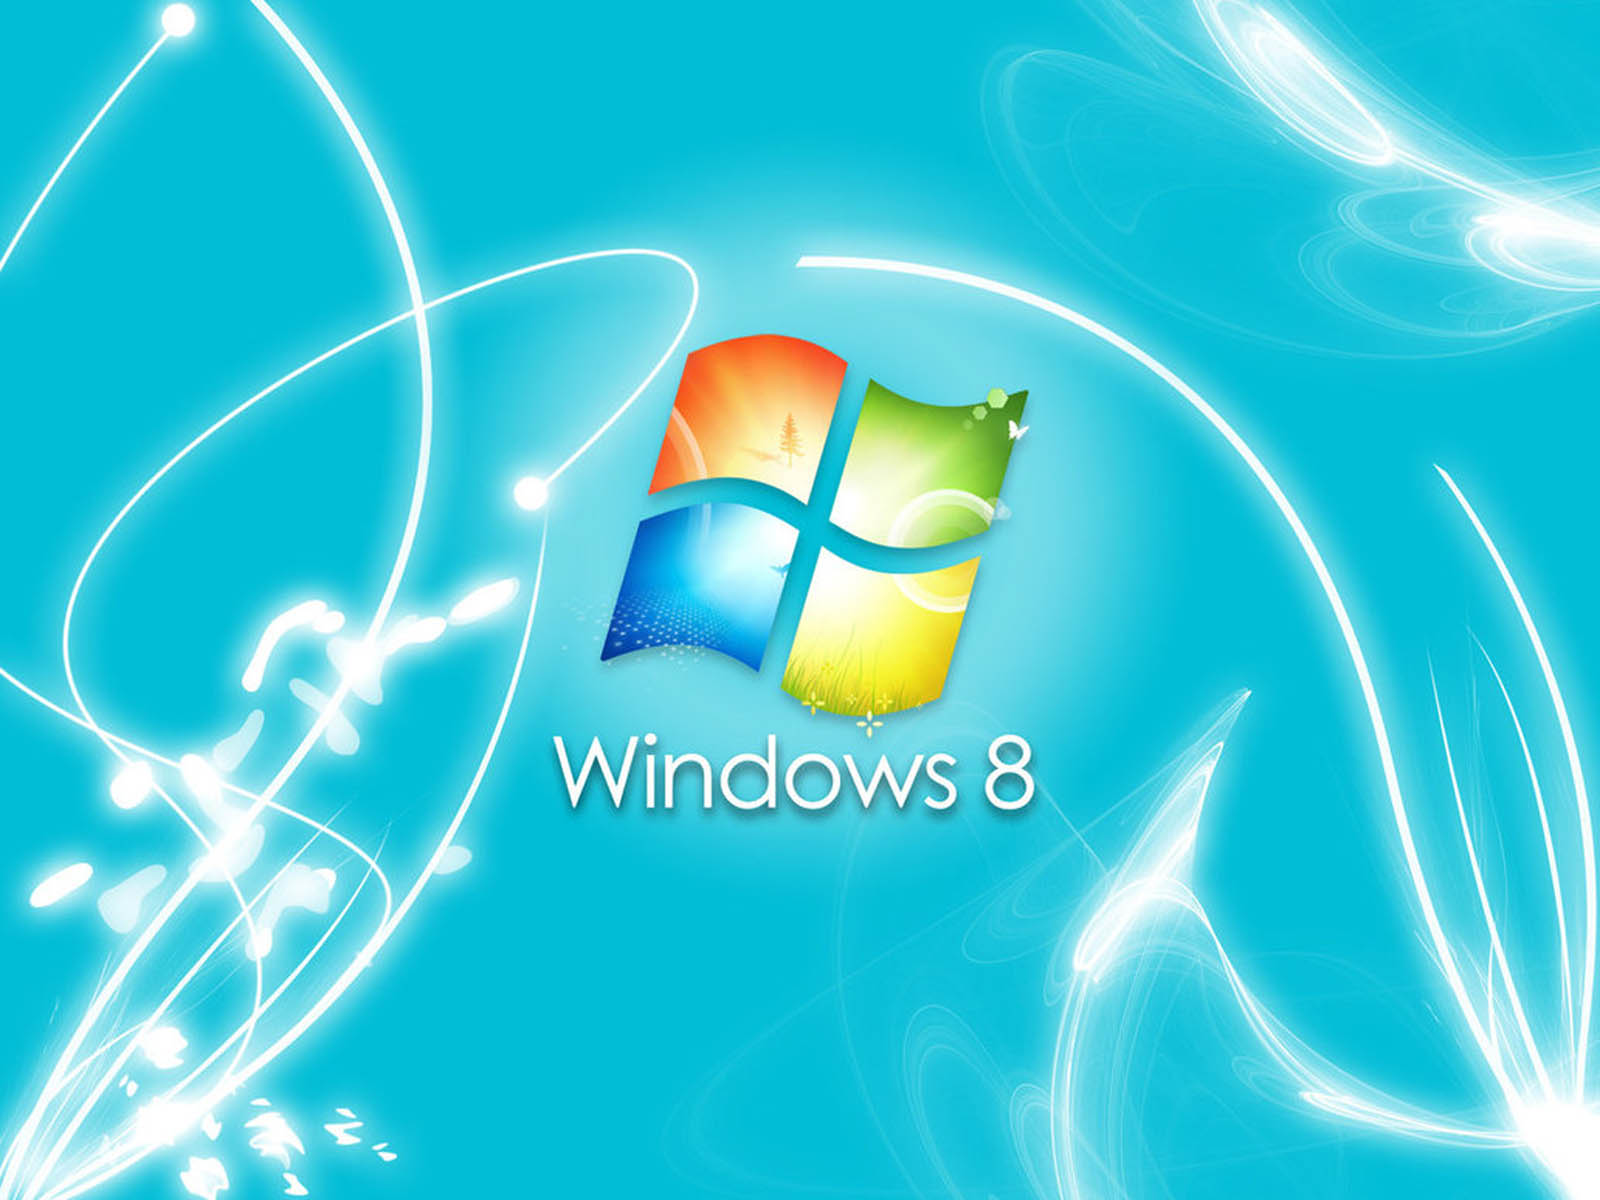 wallpapers Windows 8 Desktop Wallpapers and Backgrounds 1600x1200